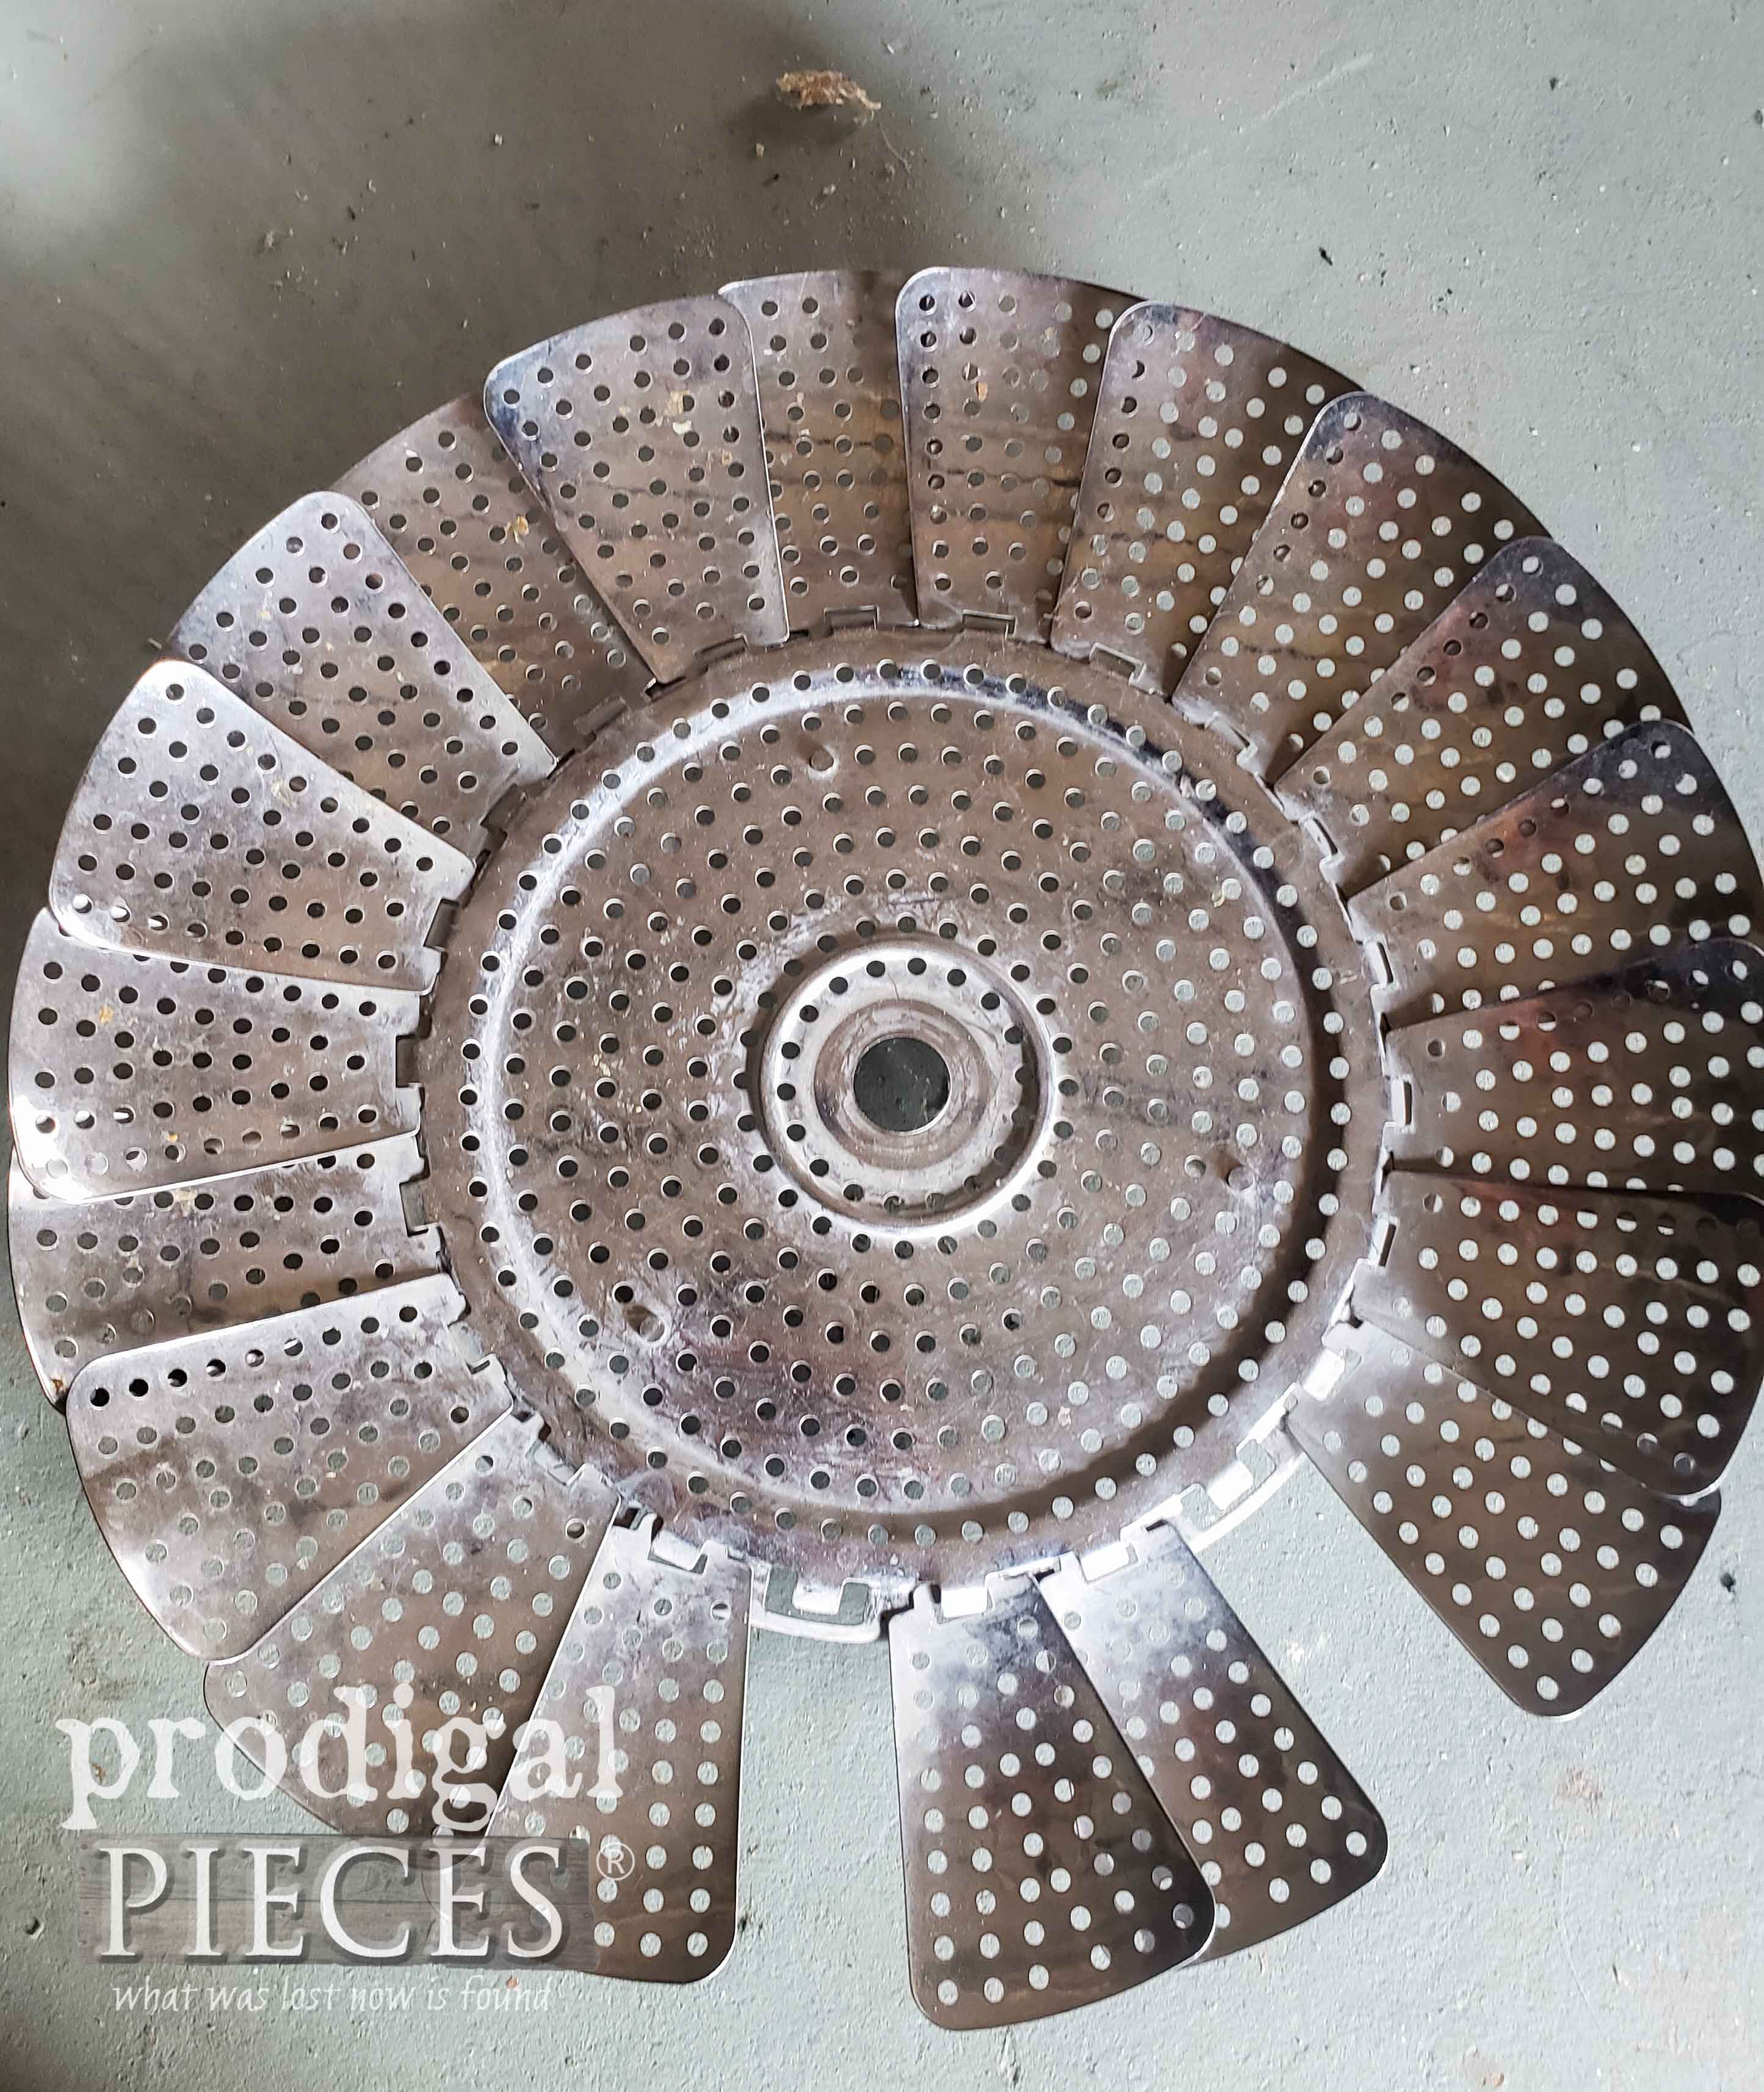 Upcycled Basket Steamer for Salvaged Junk Turkey Metal Art | prodigalpieces.com